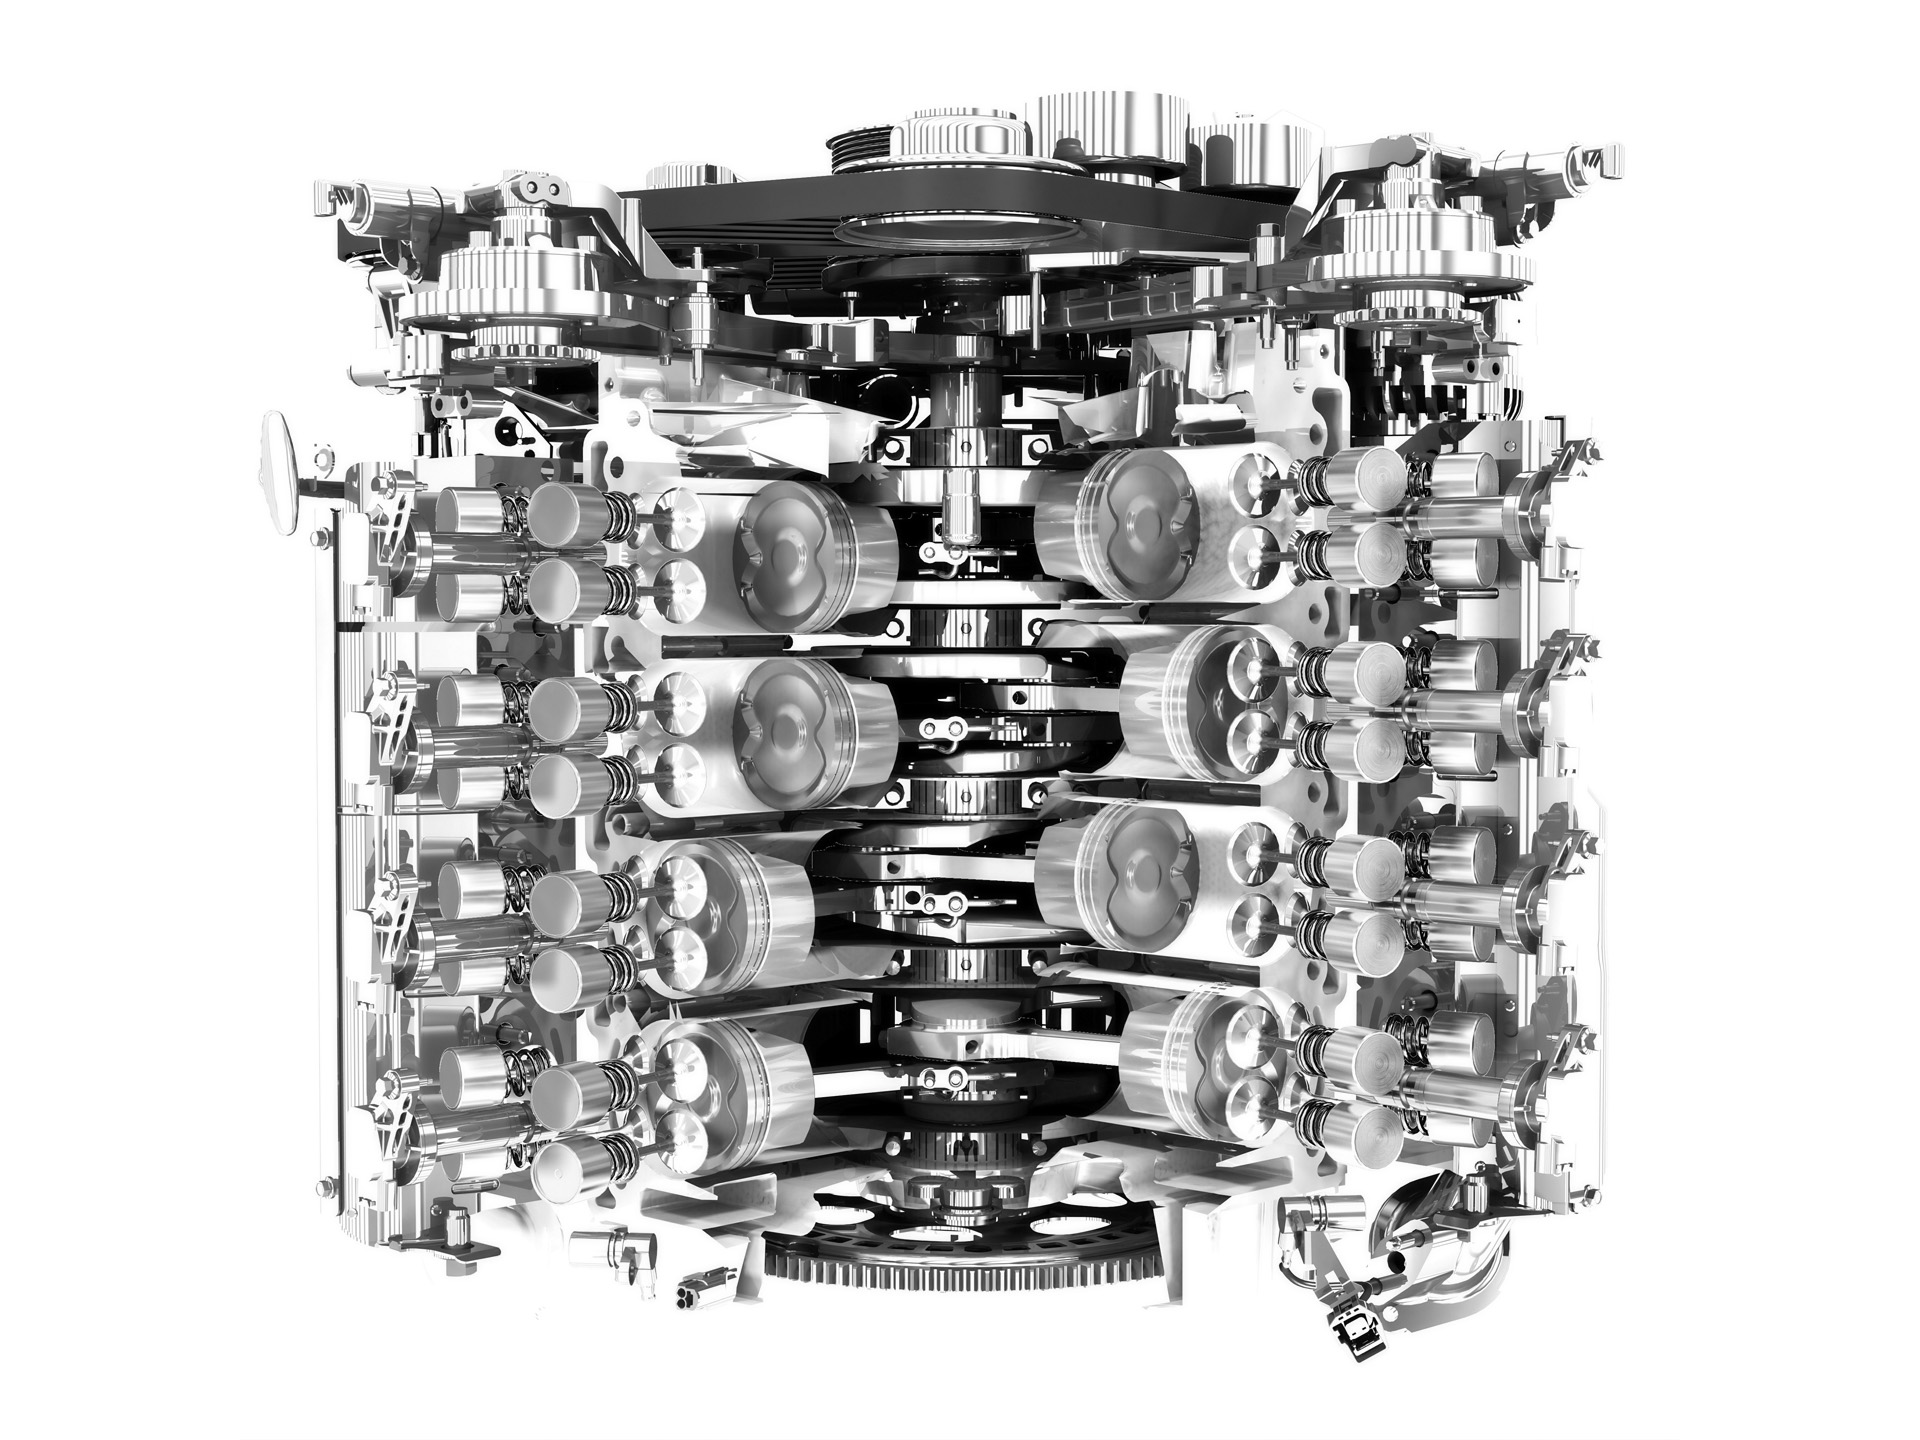 Sample P1303 Engine